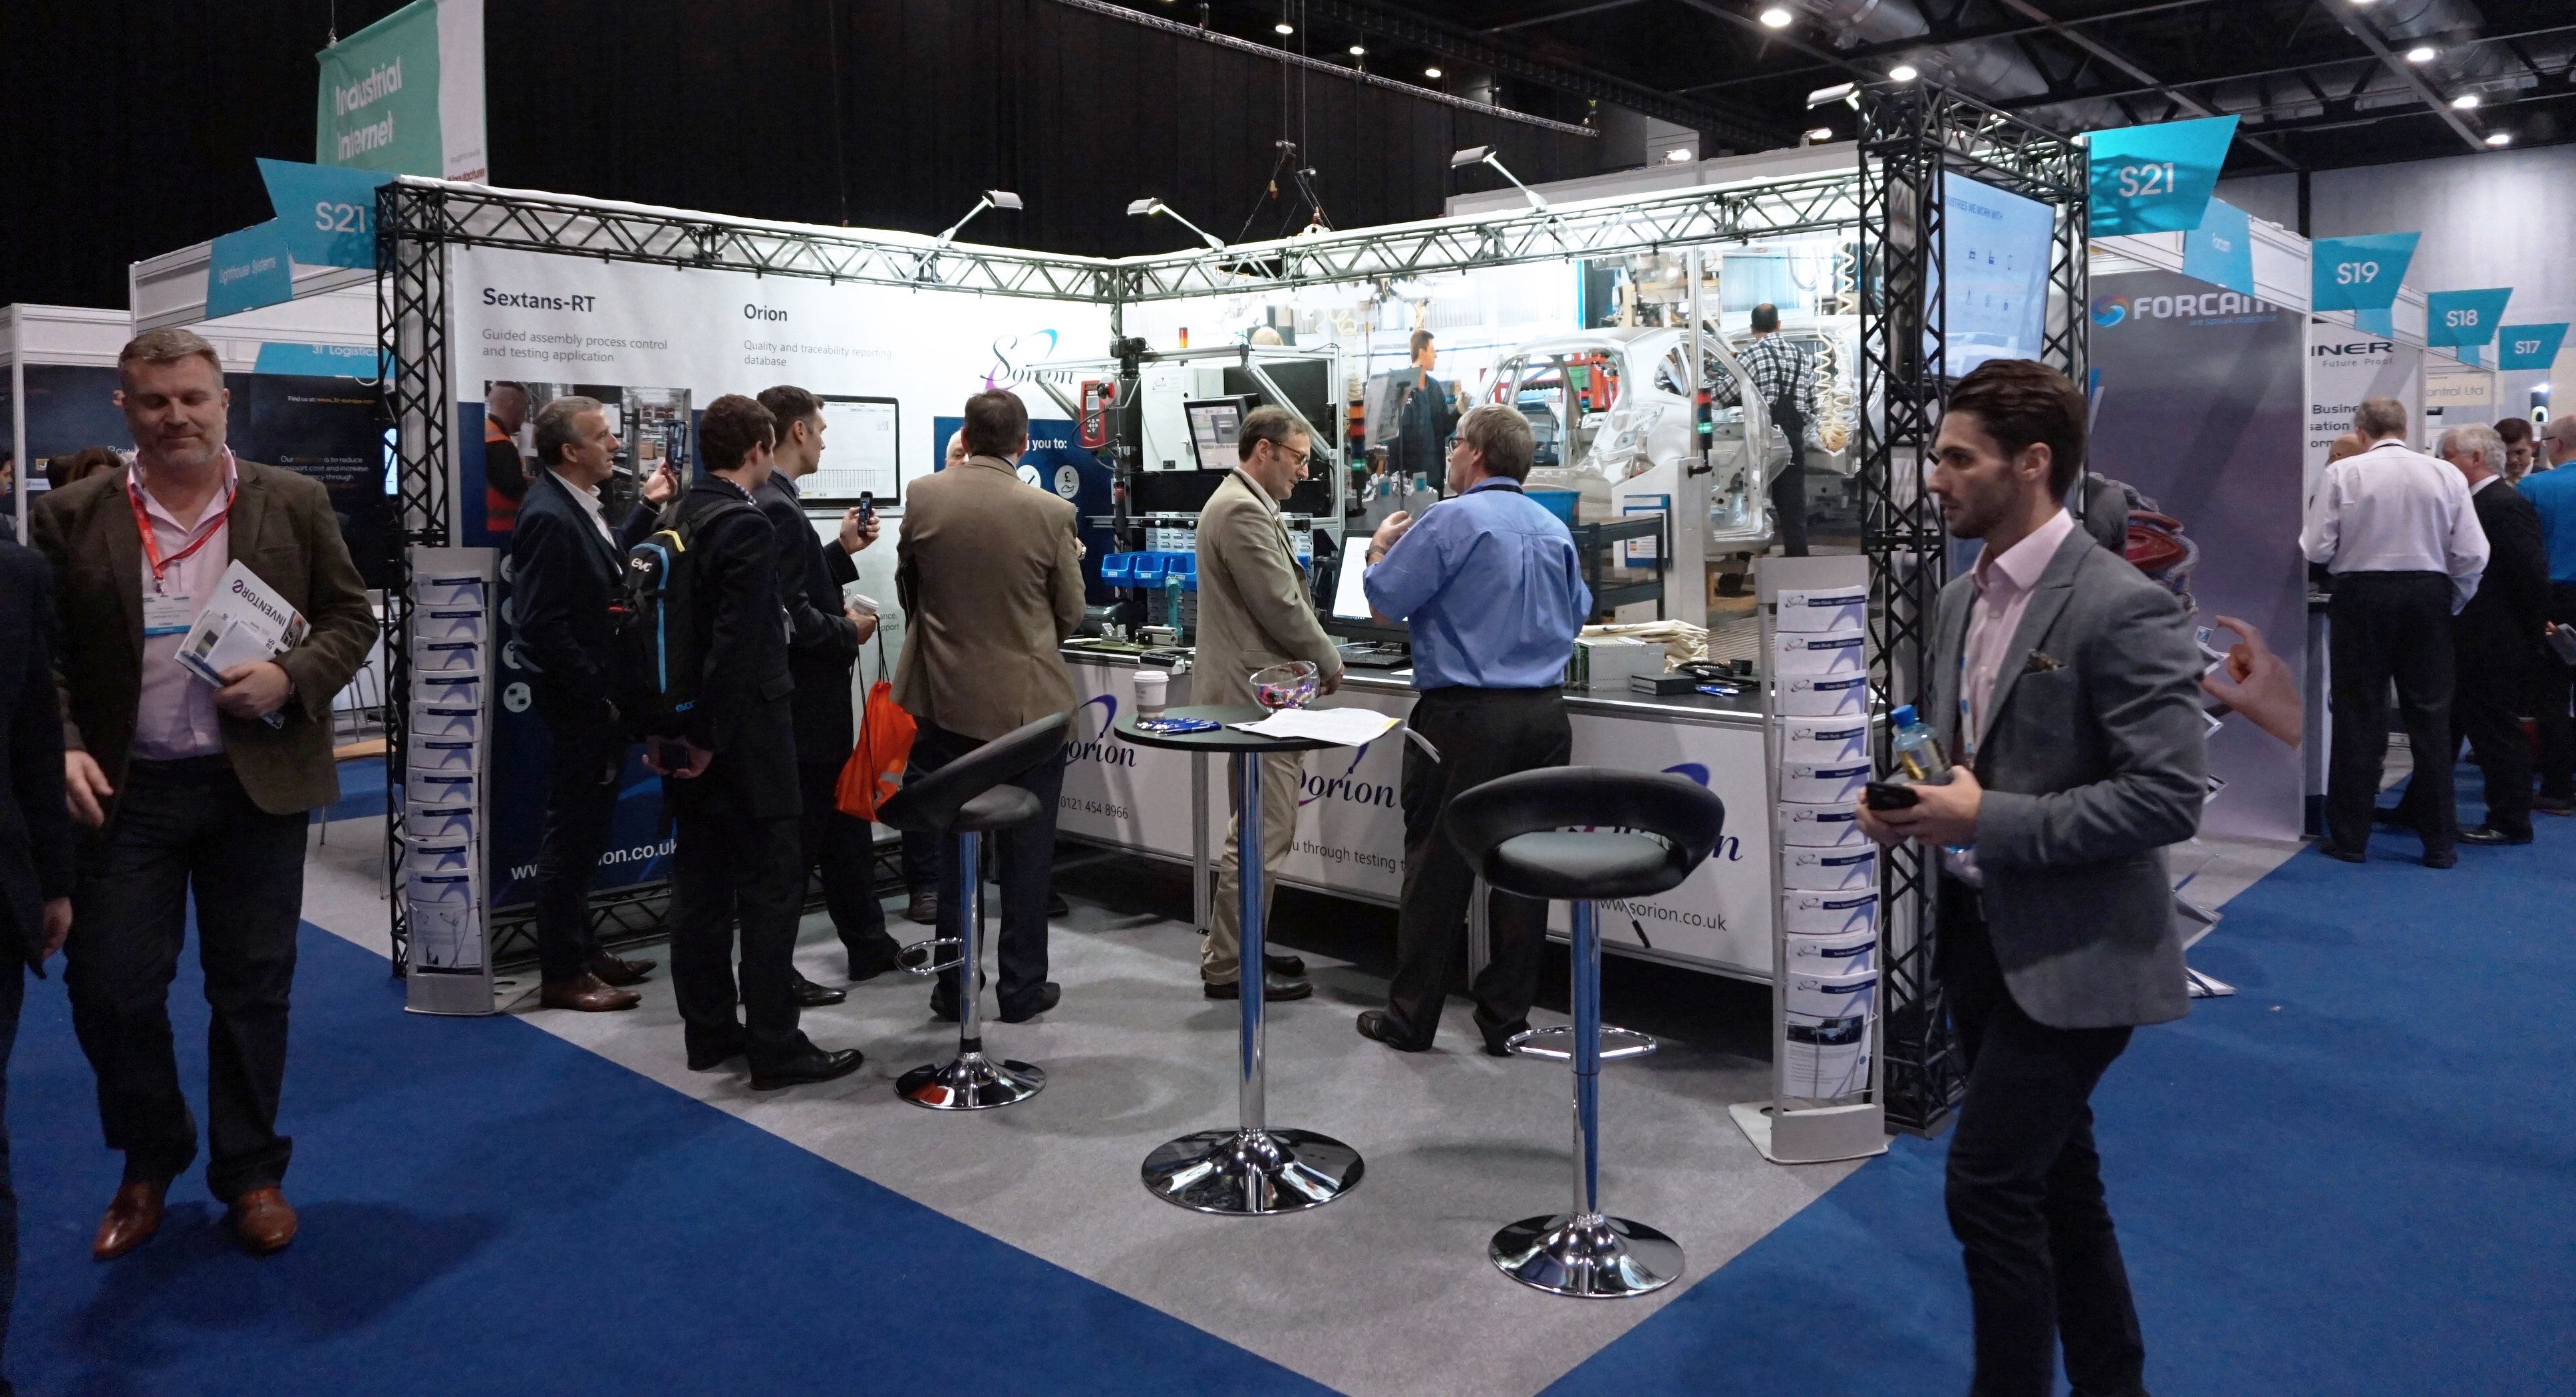 Sorion Electronics at Smart Factory Expo, Liverpool